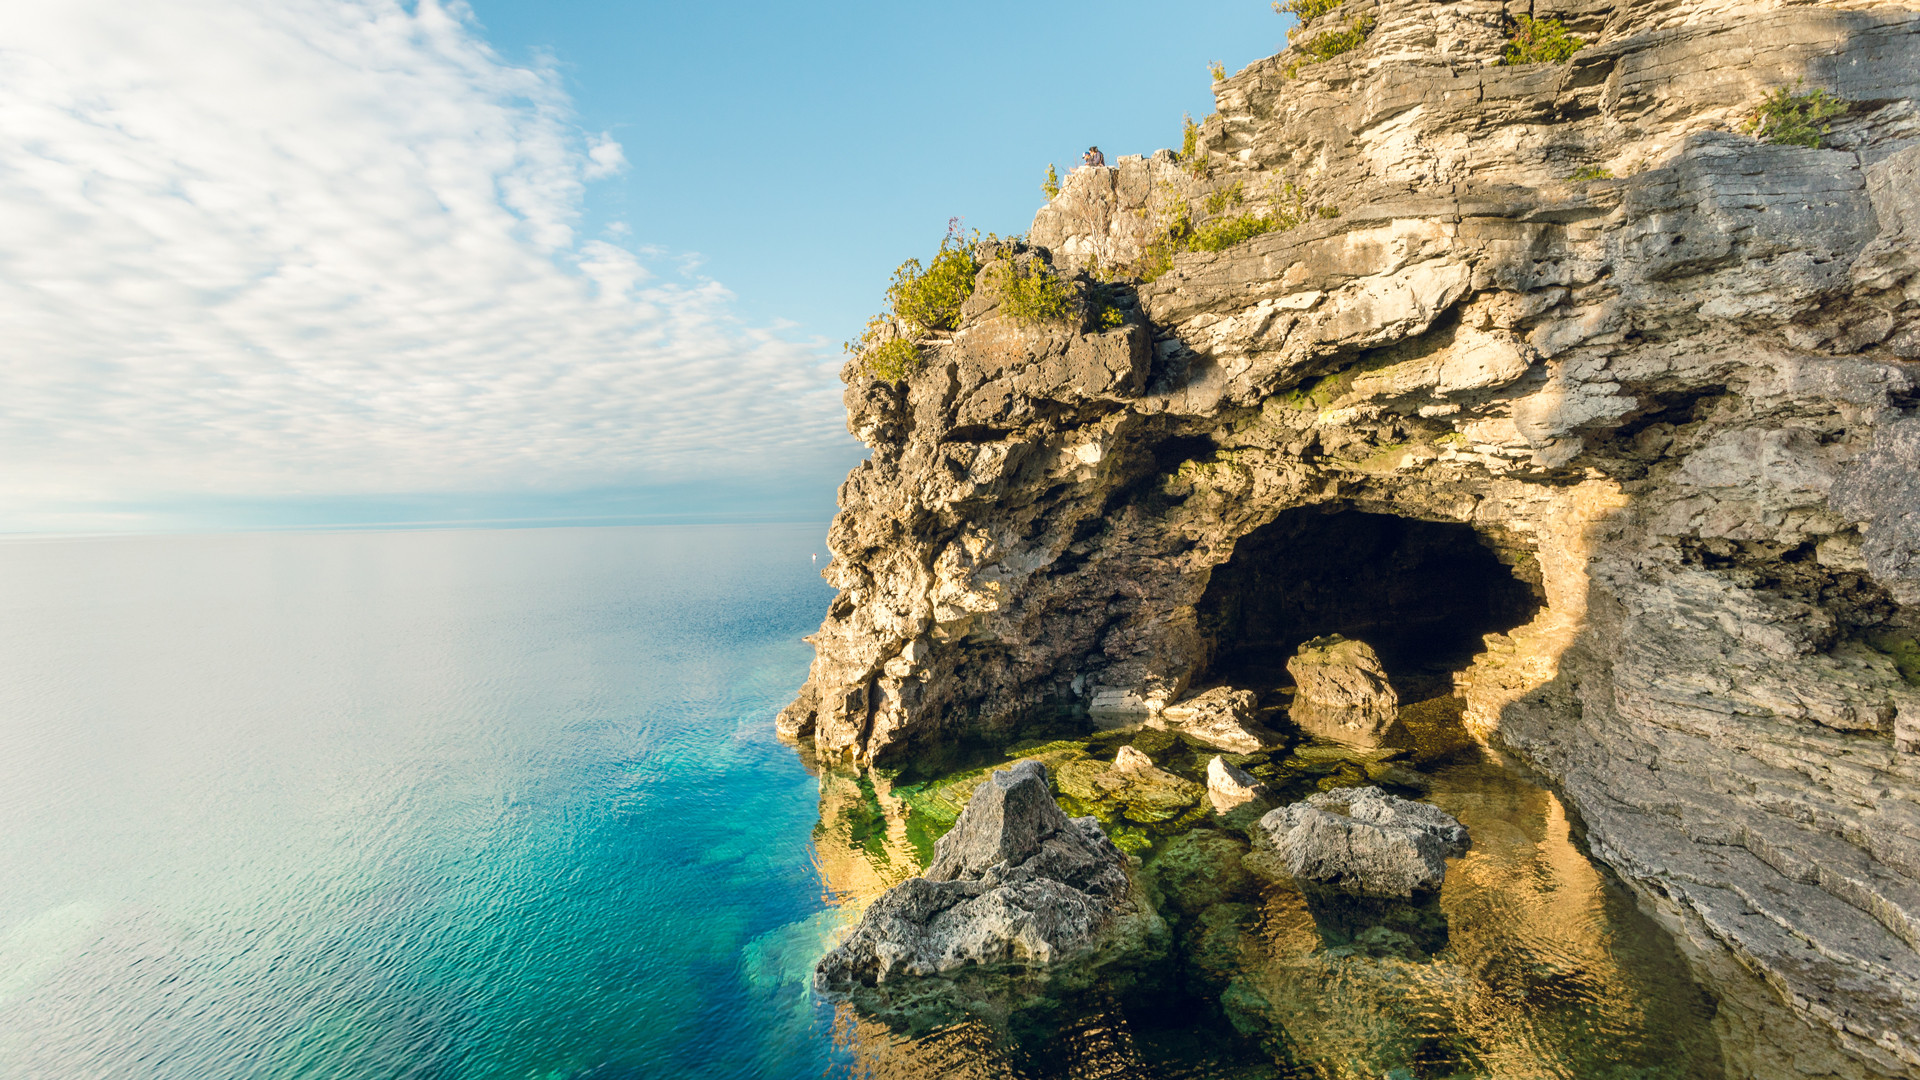 Breathtaking Ontario beaches | The Grotto is a cave with a pool of blue water inside